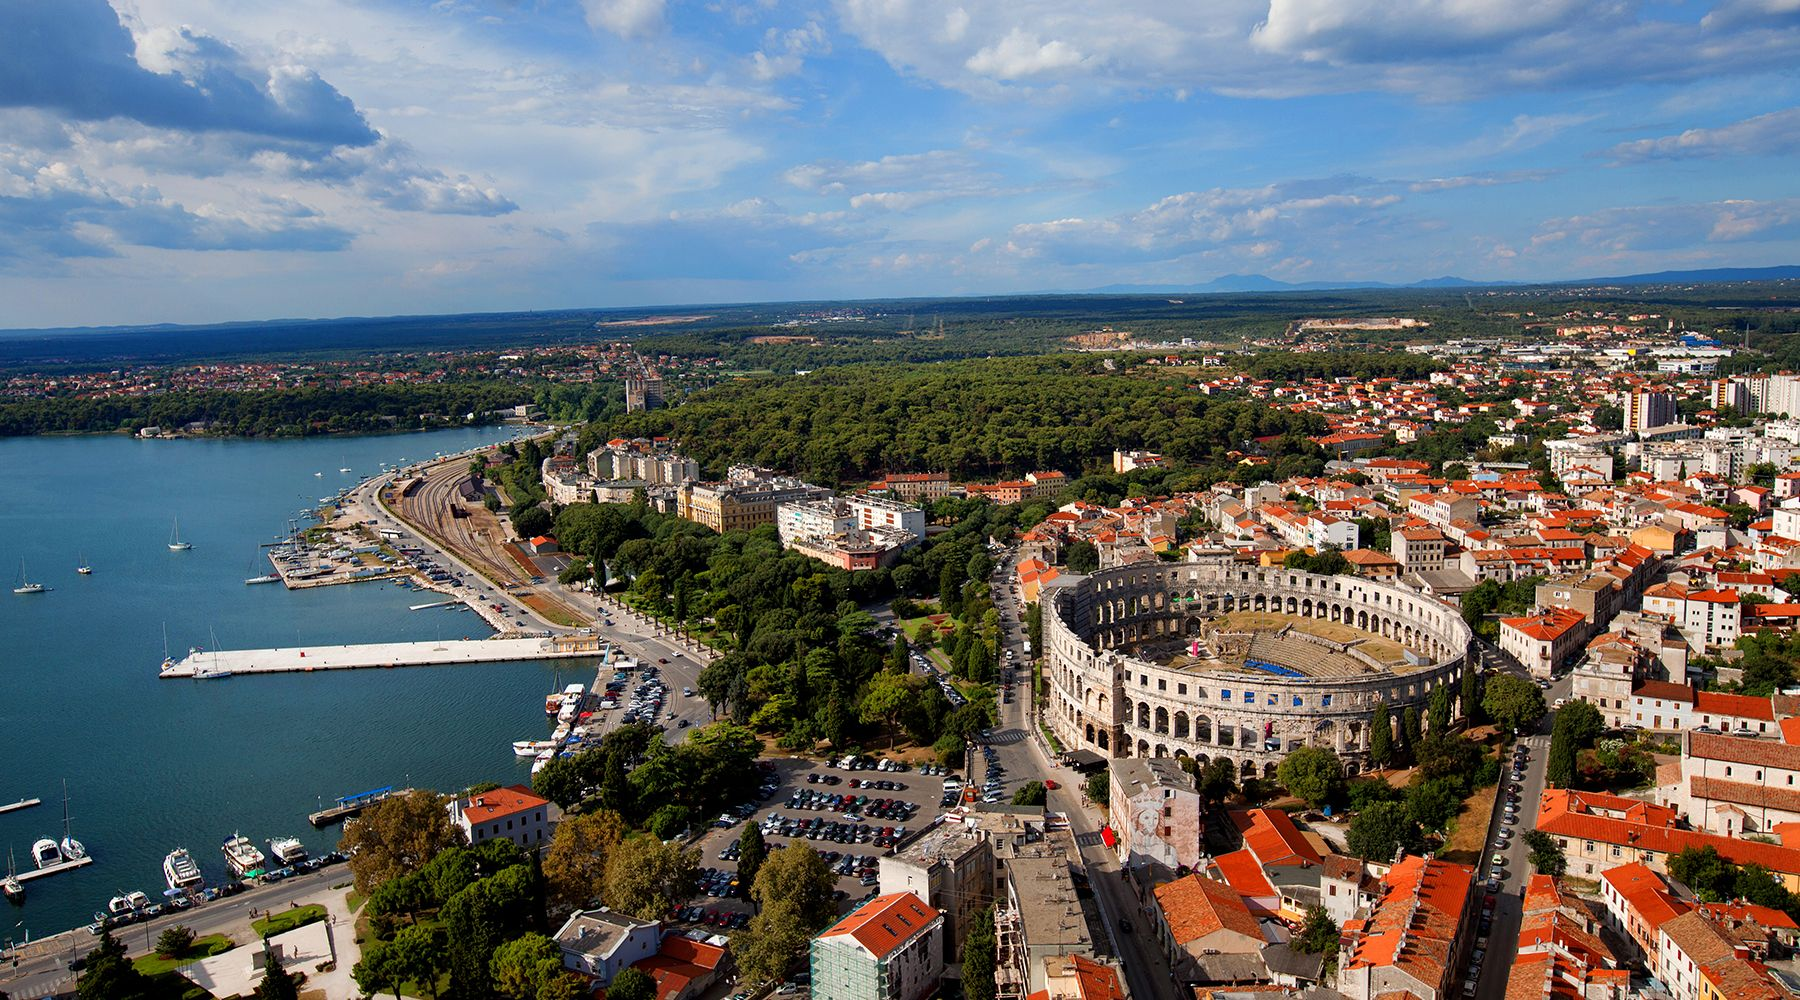 Pula, Croatia - Monterrasol small group tours to Pula, Croatia. Travel agency offers small group car tours to see Pula in Croatia. Order small group tour to Pula with departure date on request.